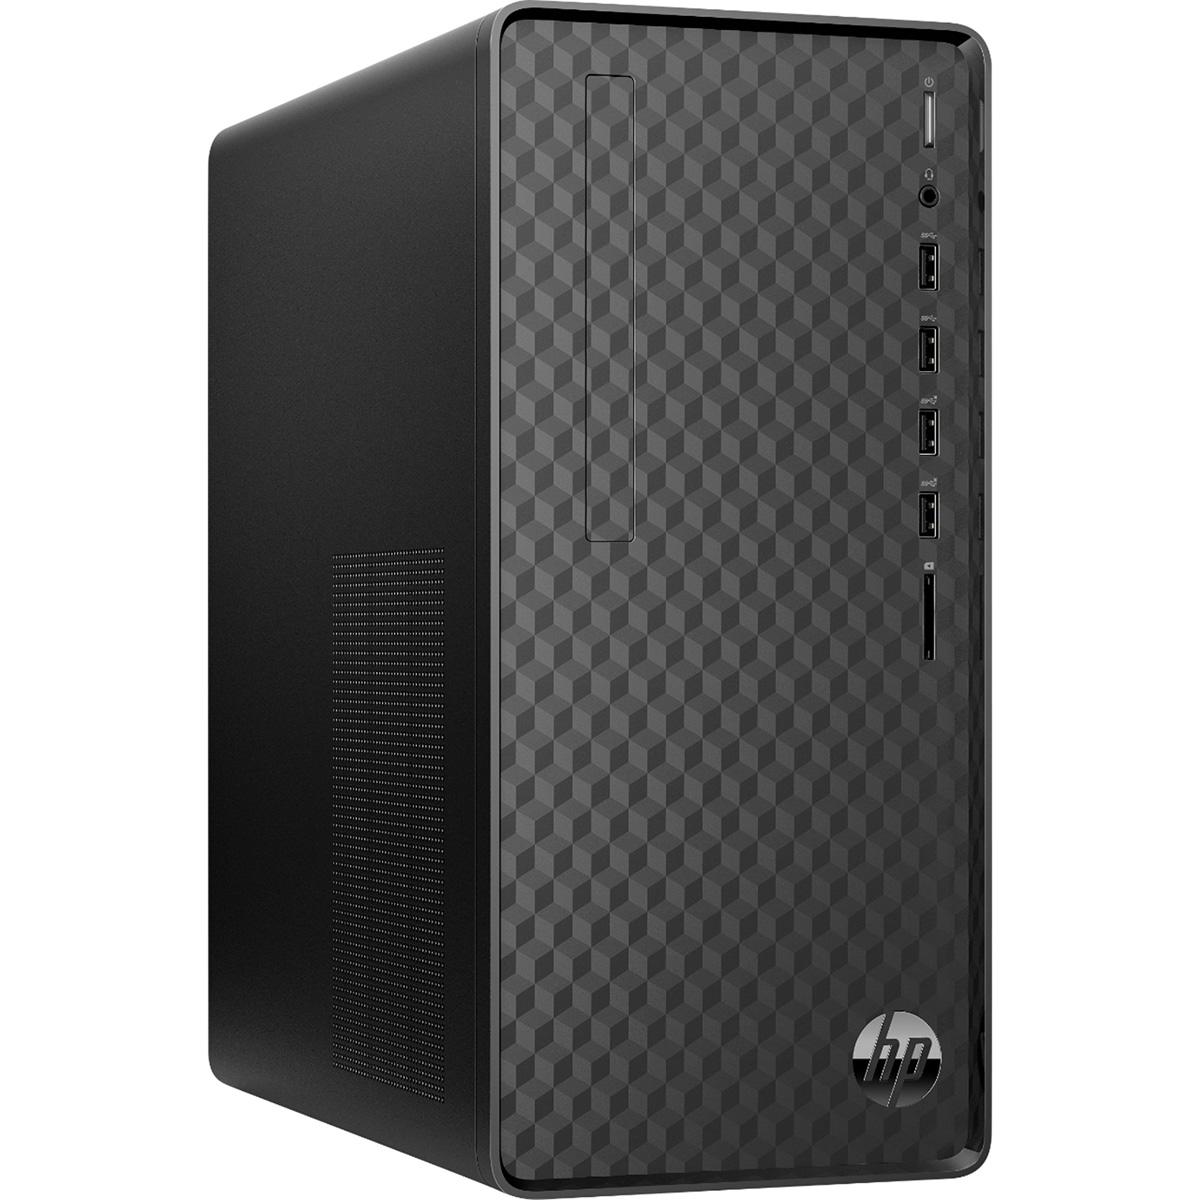 HP Desktop Intel Pentium 8GB 256GB SSD PC Computer for $329.99 Shipped